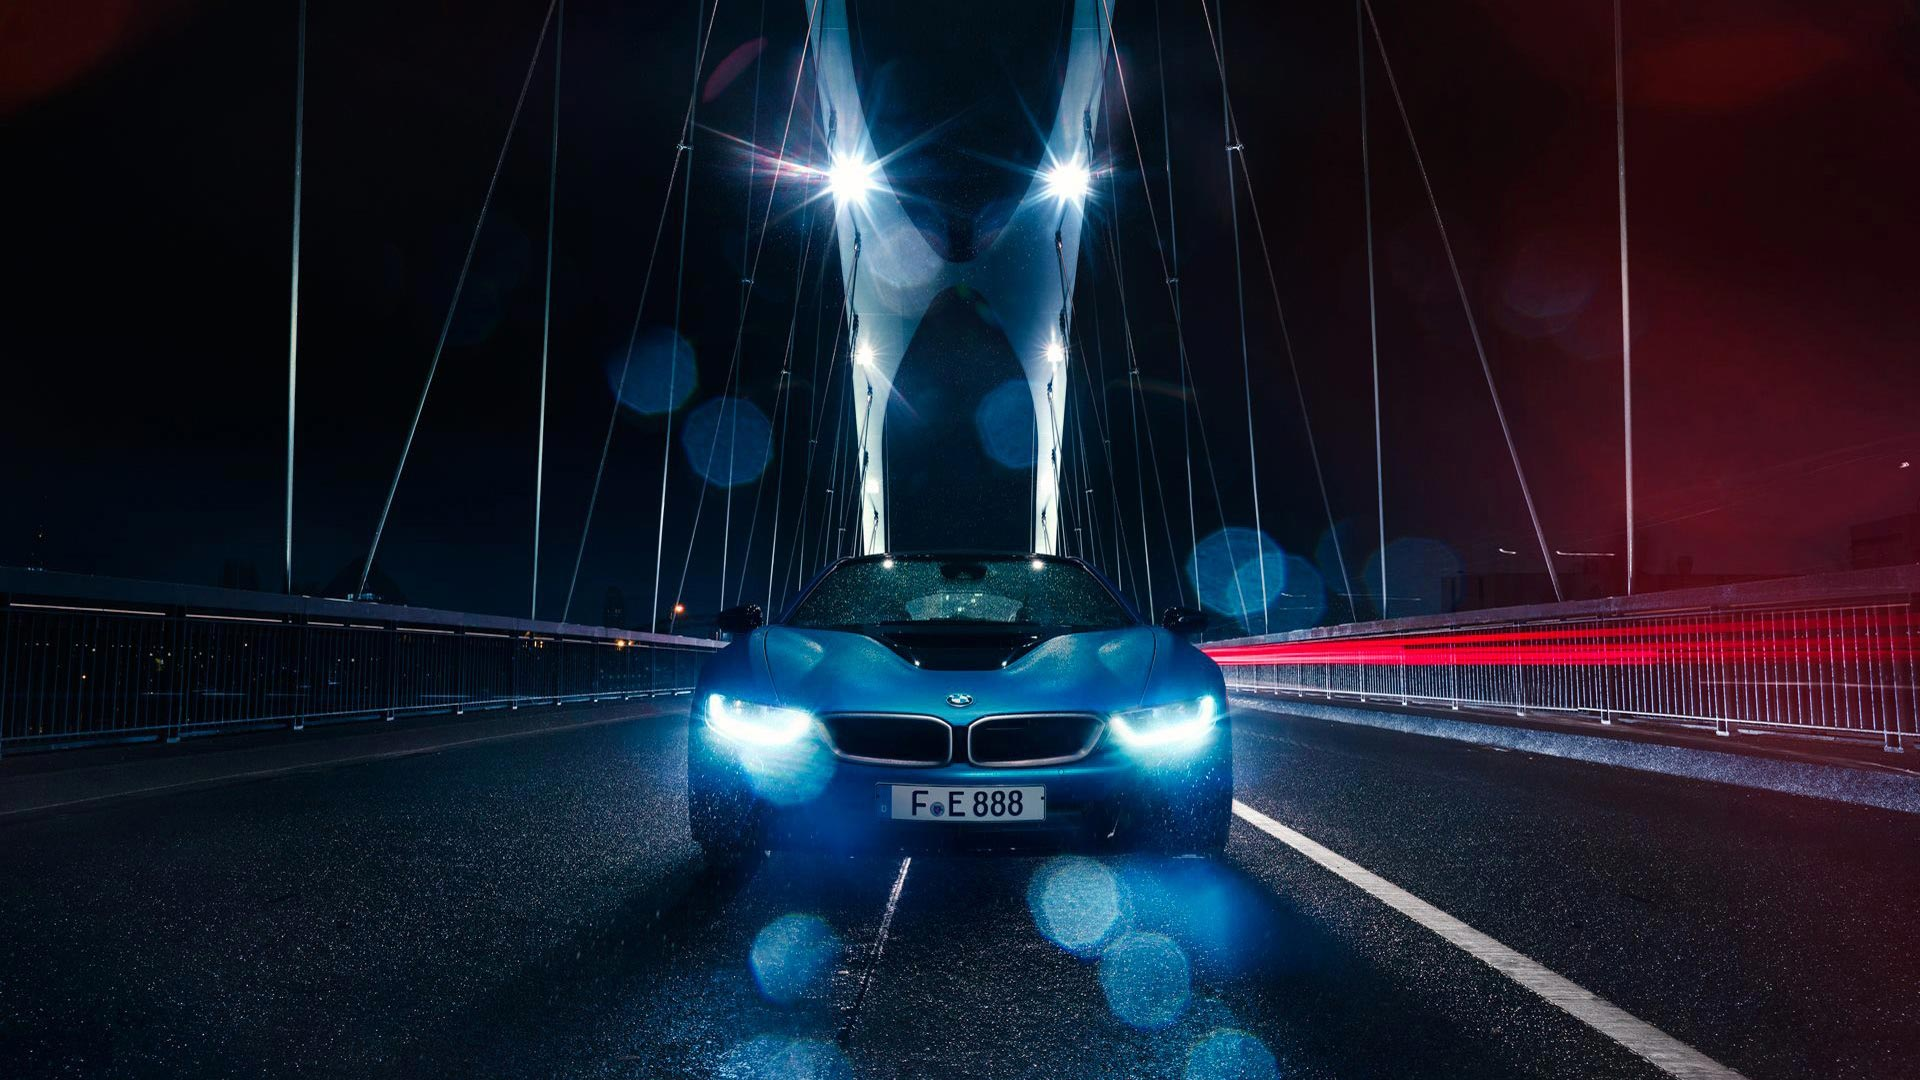 Bmw I8 On Bridge Hd Wallpaper 64656 1920x1080px